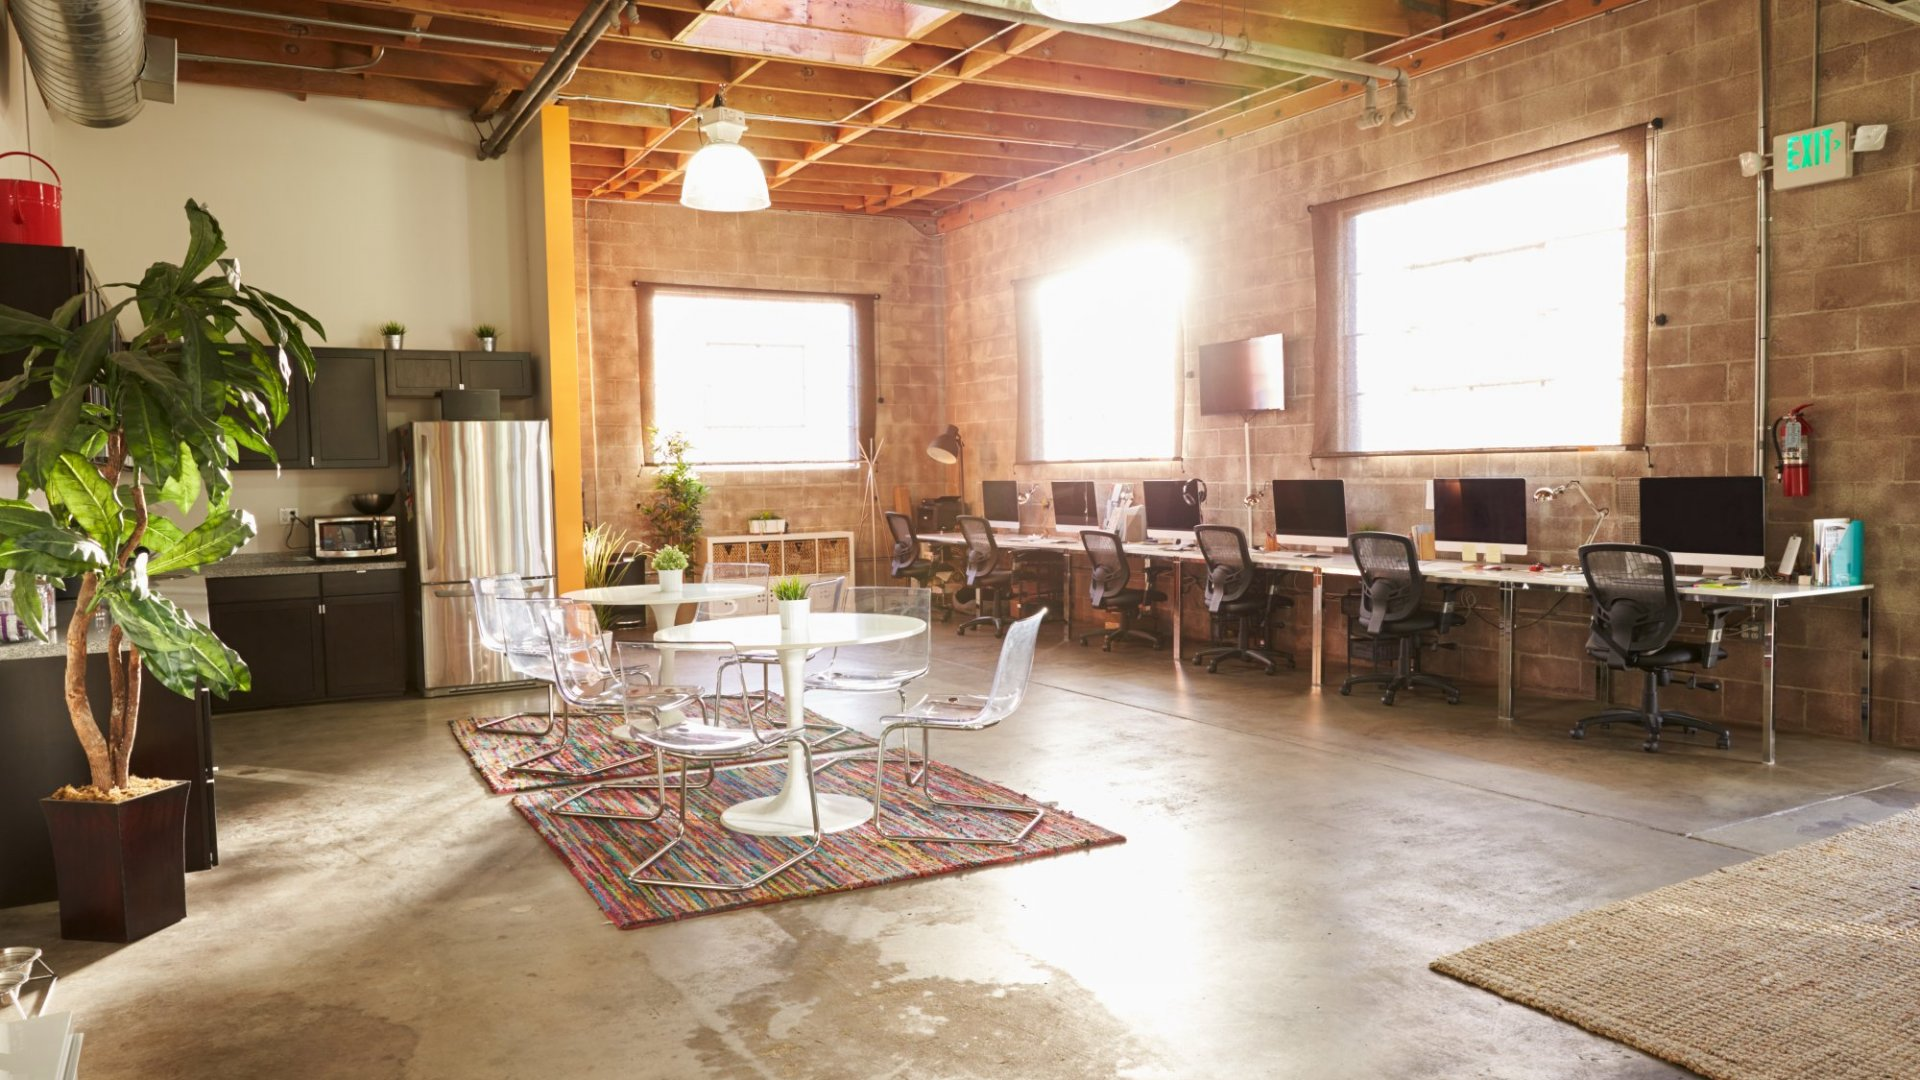 6 Considerations You Must Make When Looking for New Office Space